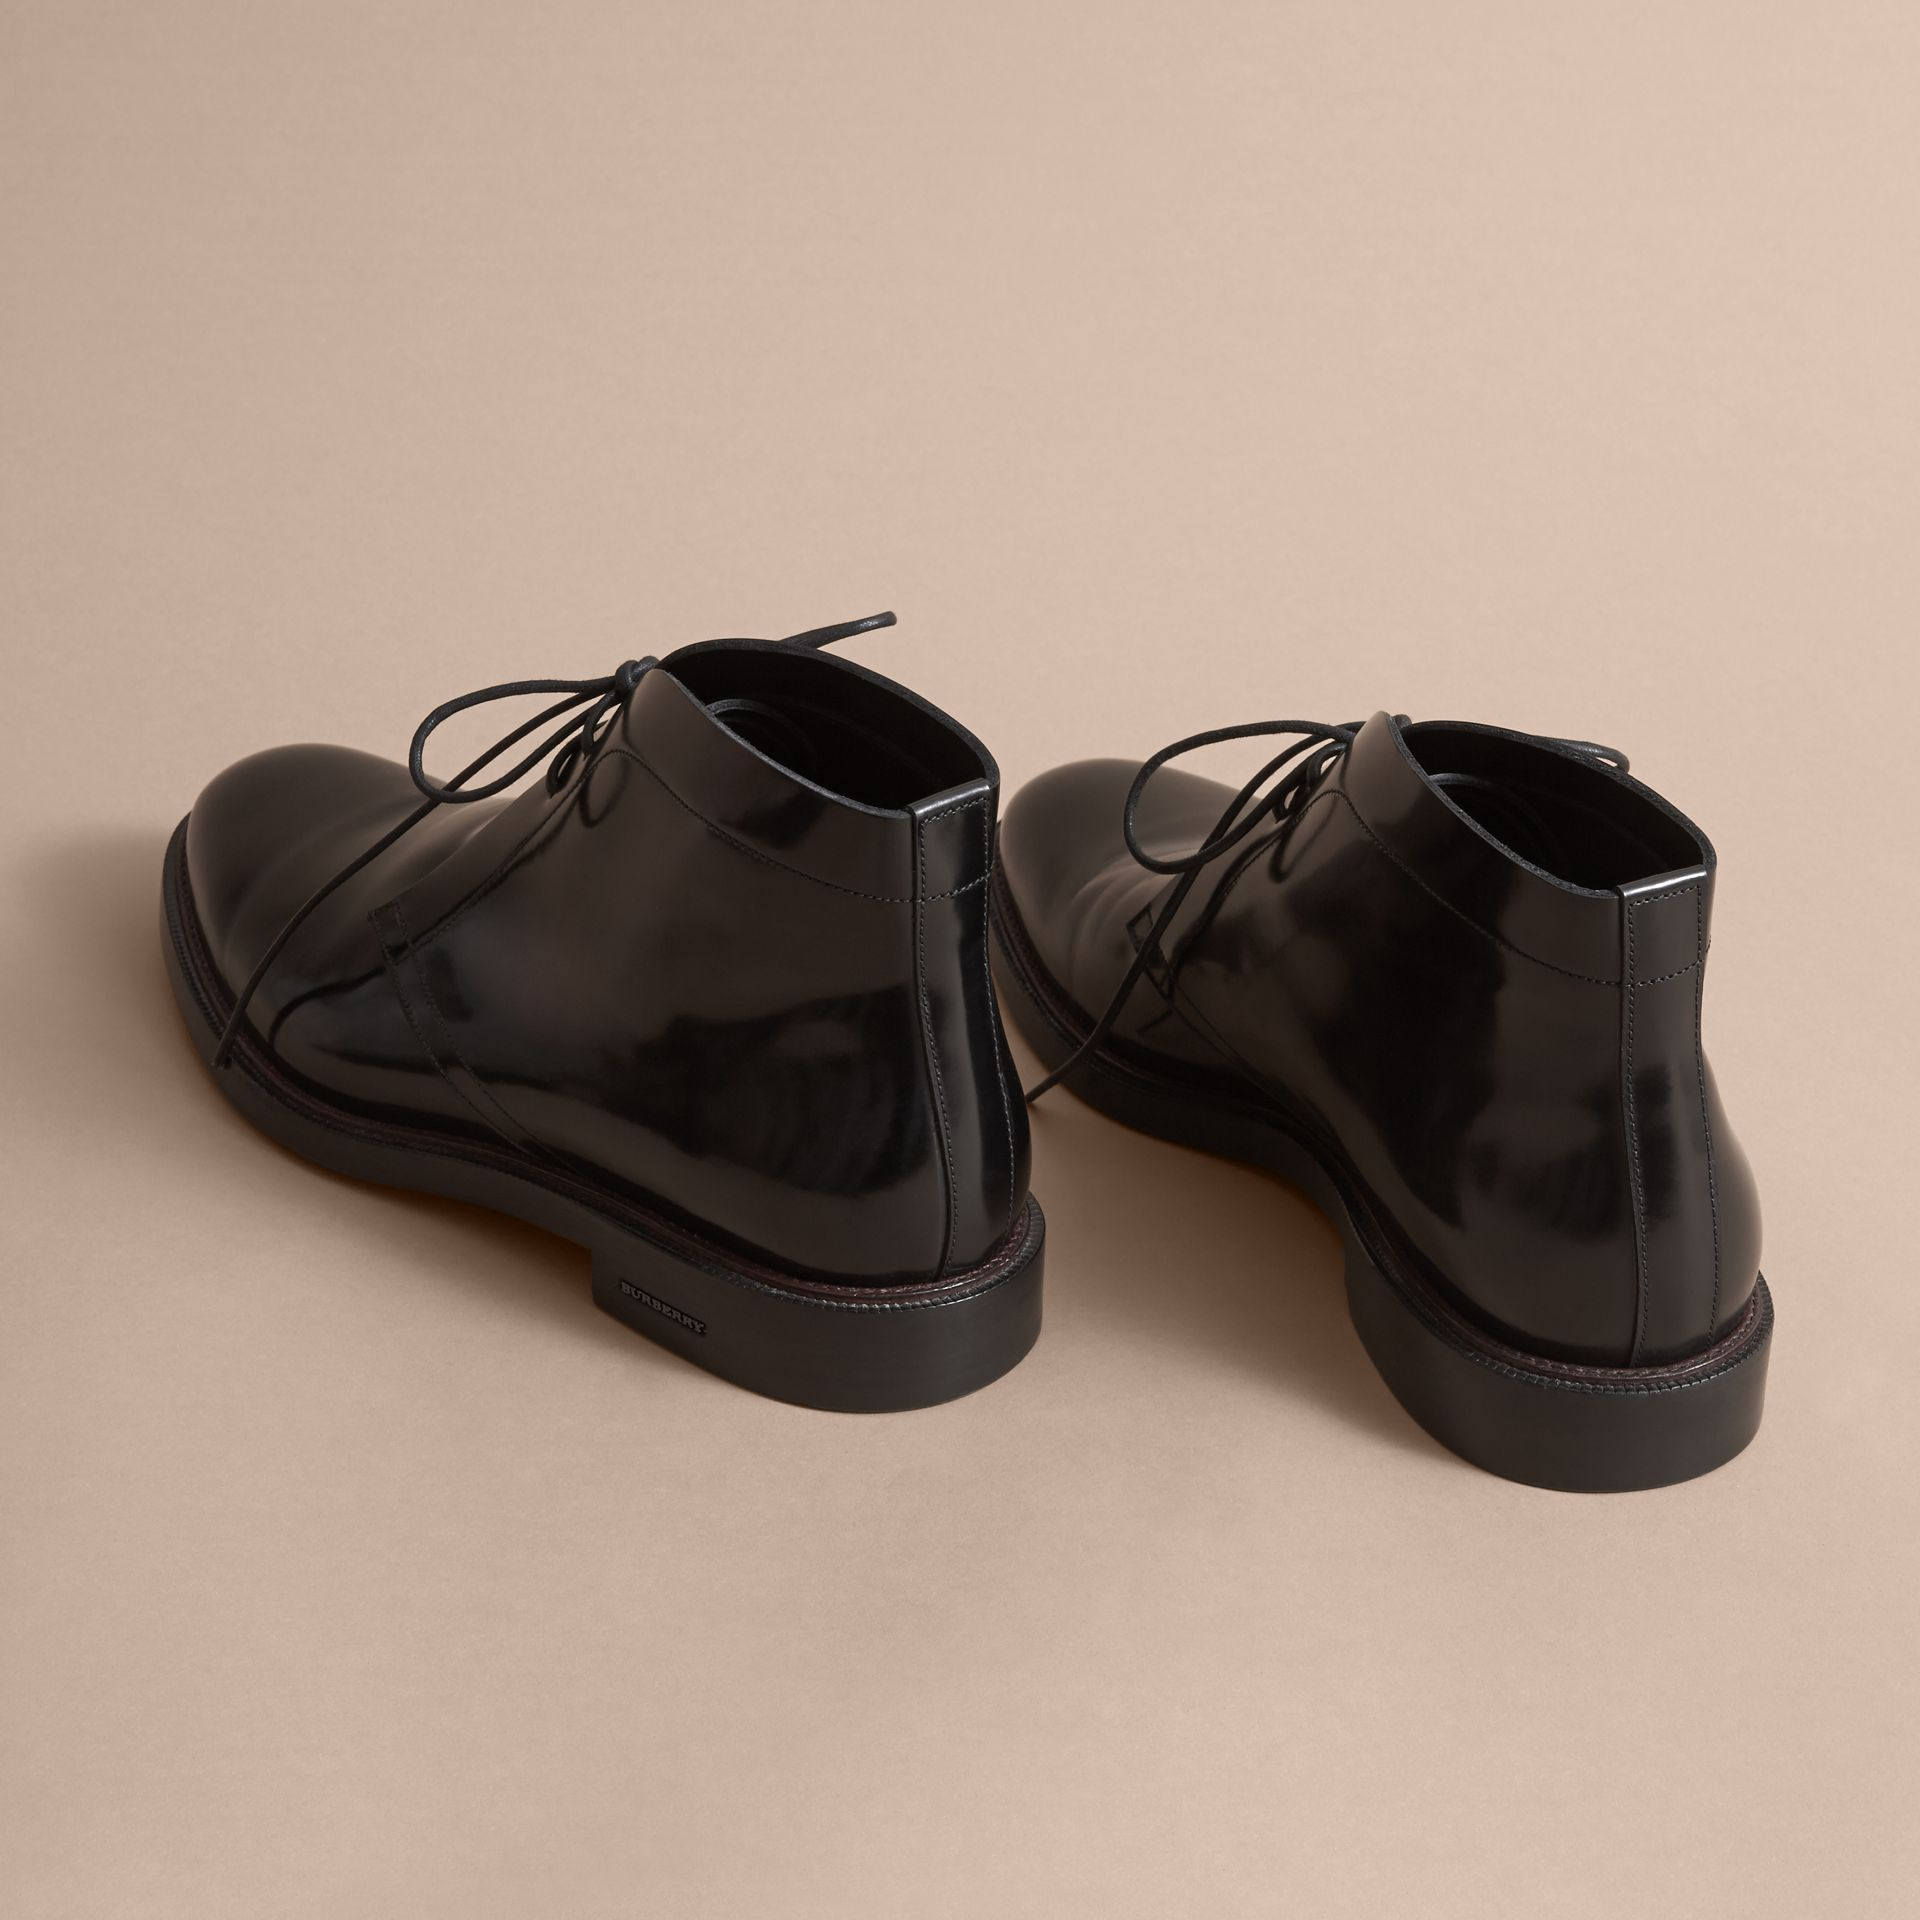 Polished Leather Desert Boots in Black - Men | Burberry Canada - gallery image 4